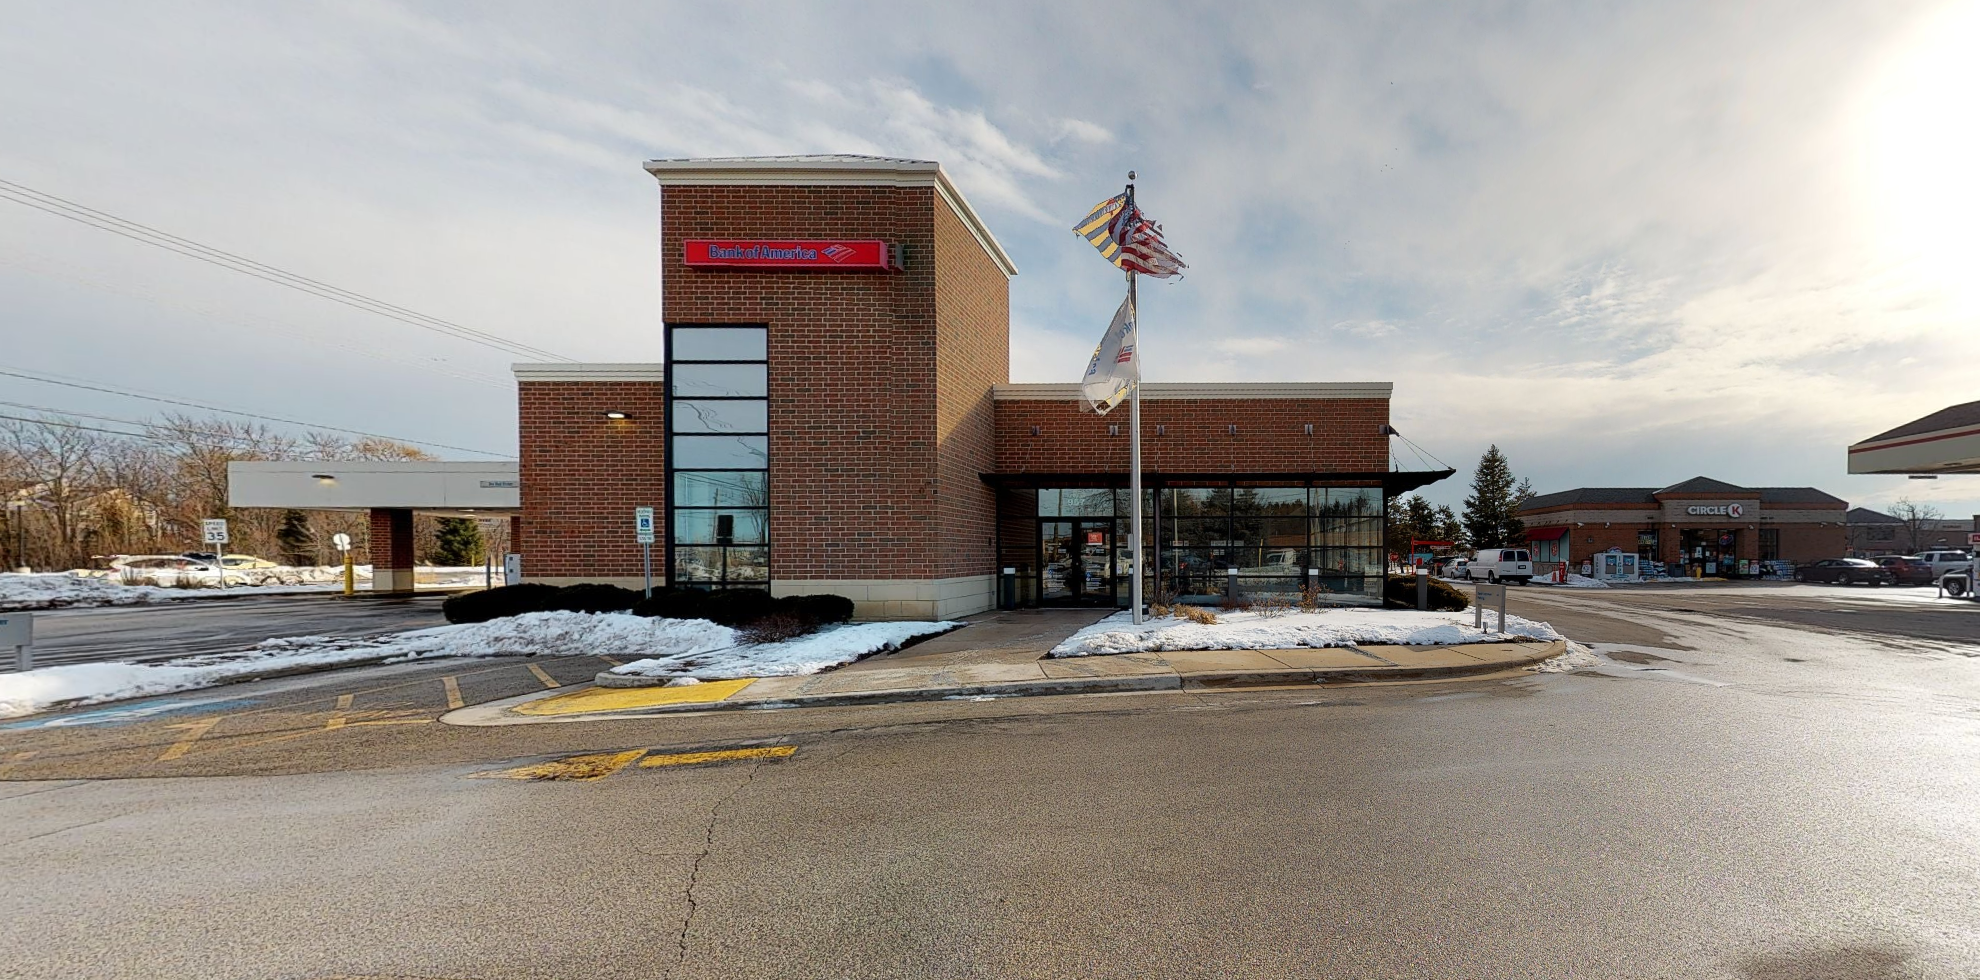 Bank of America financial center with drive-thru ATM   957 E Belvidere Rd, Grayslake, IL 60030